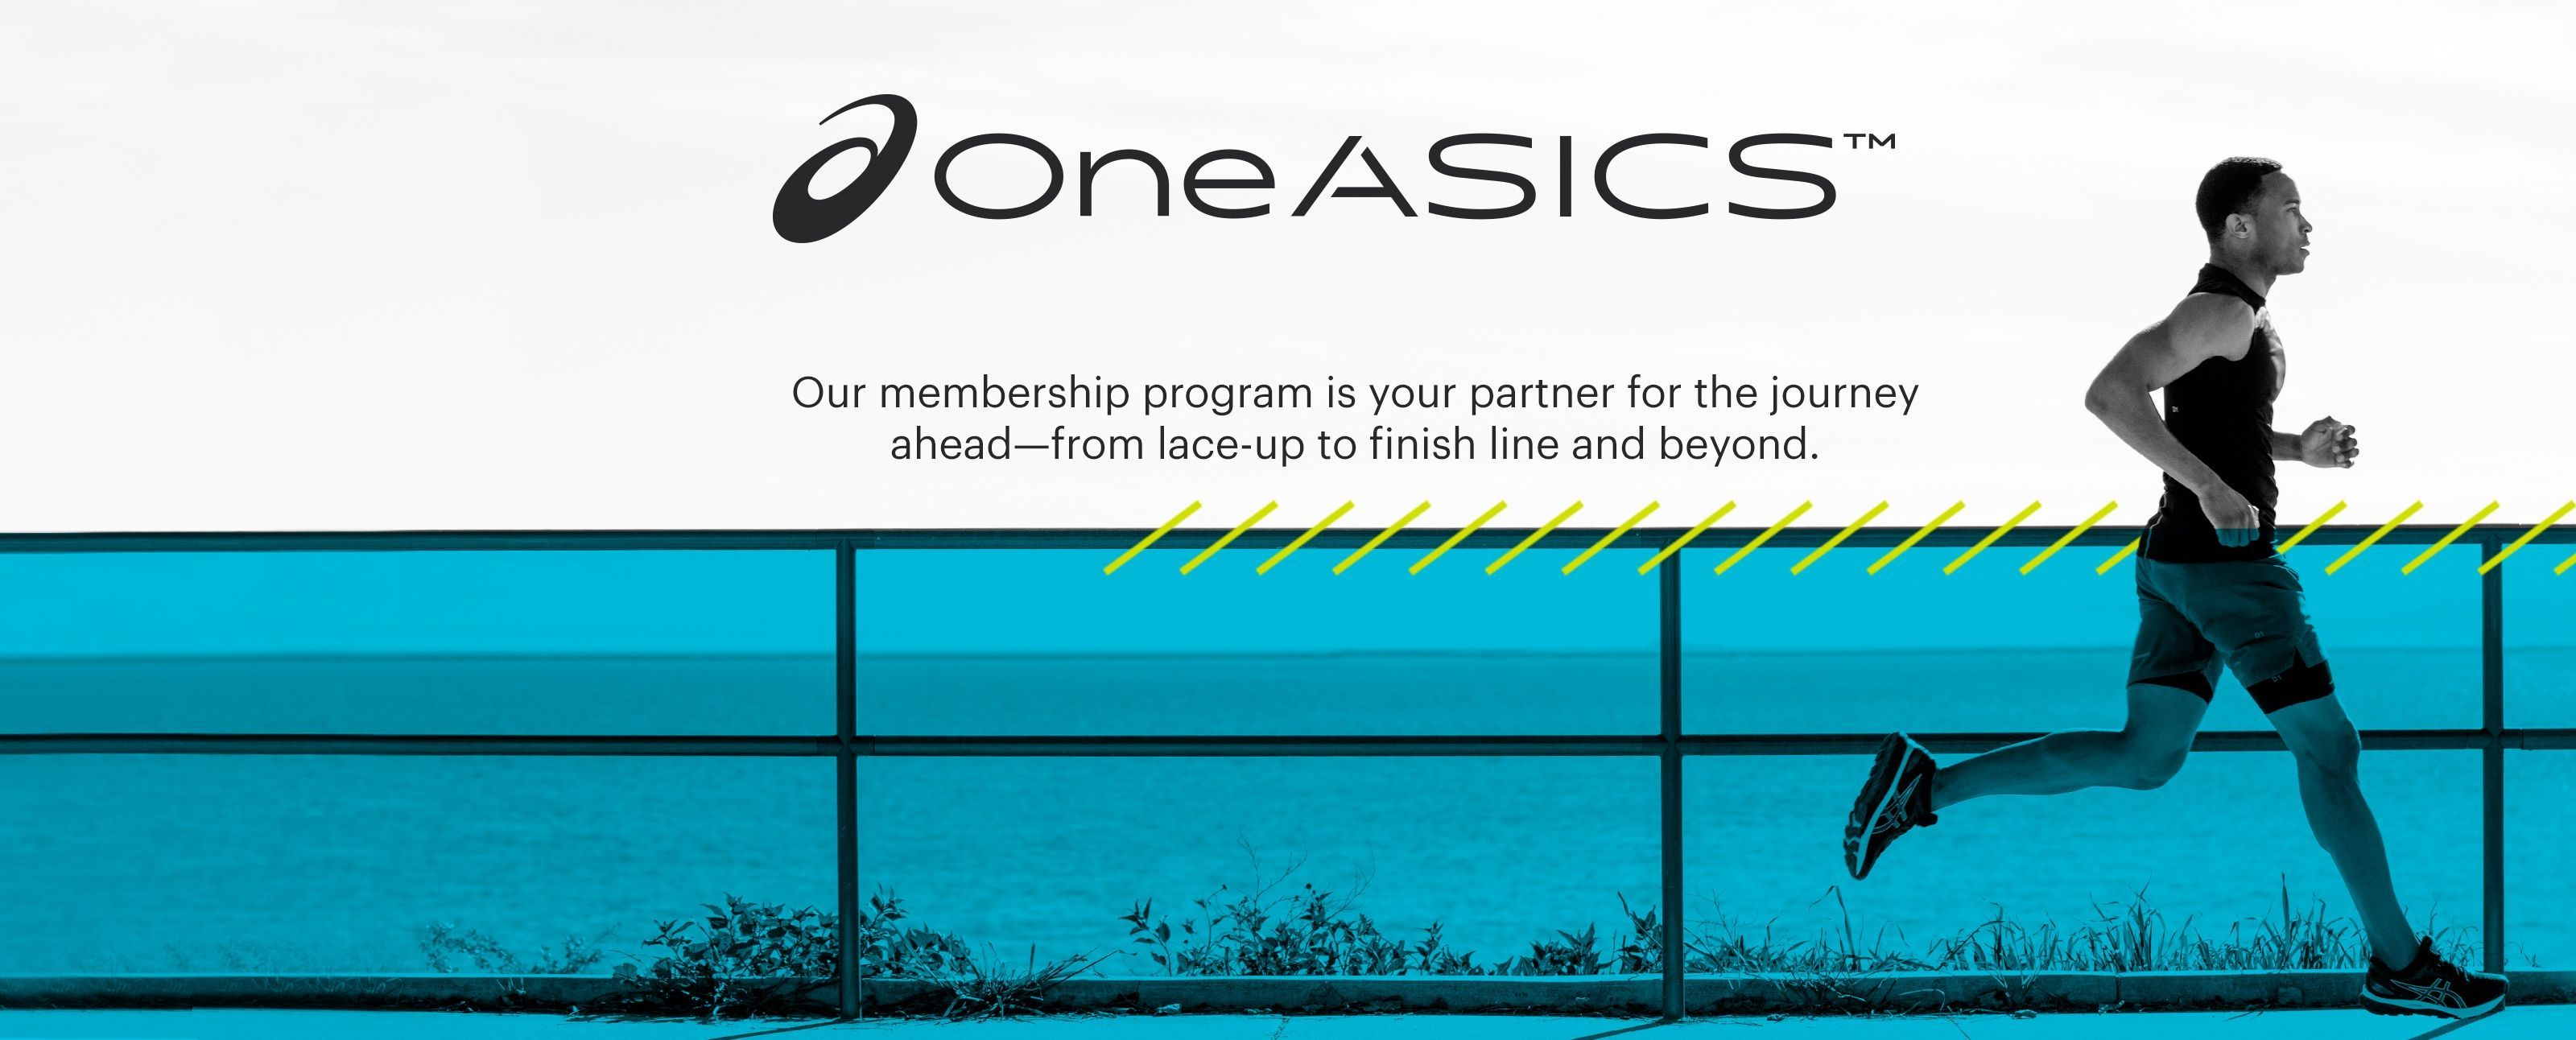 OneASICS™ (logo)  Our membership program is your partner for the journey ahead—from lace-up to finish line and beyond.